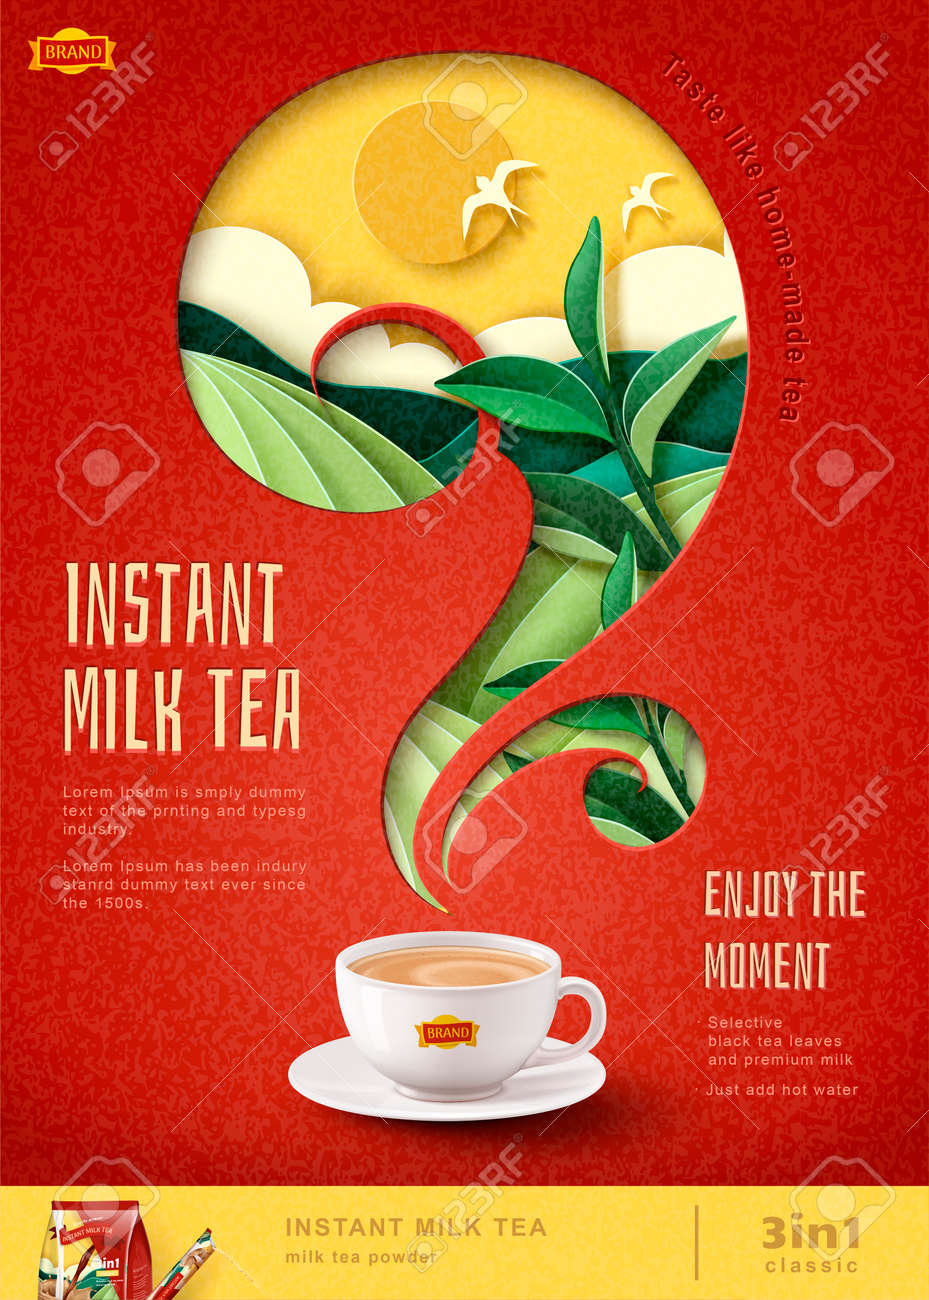 Instant milk tea poster ads with paper art terraced field background, 3d illustration - 119953439